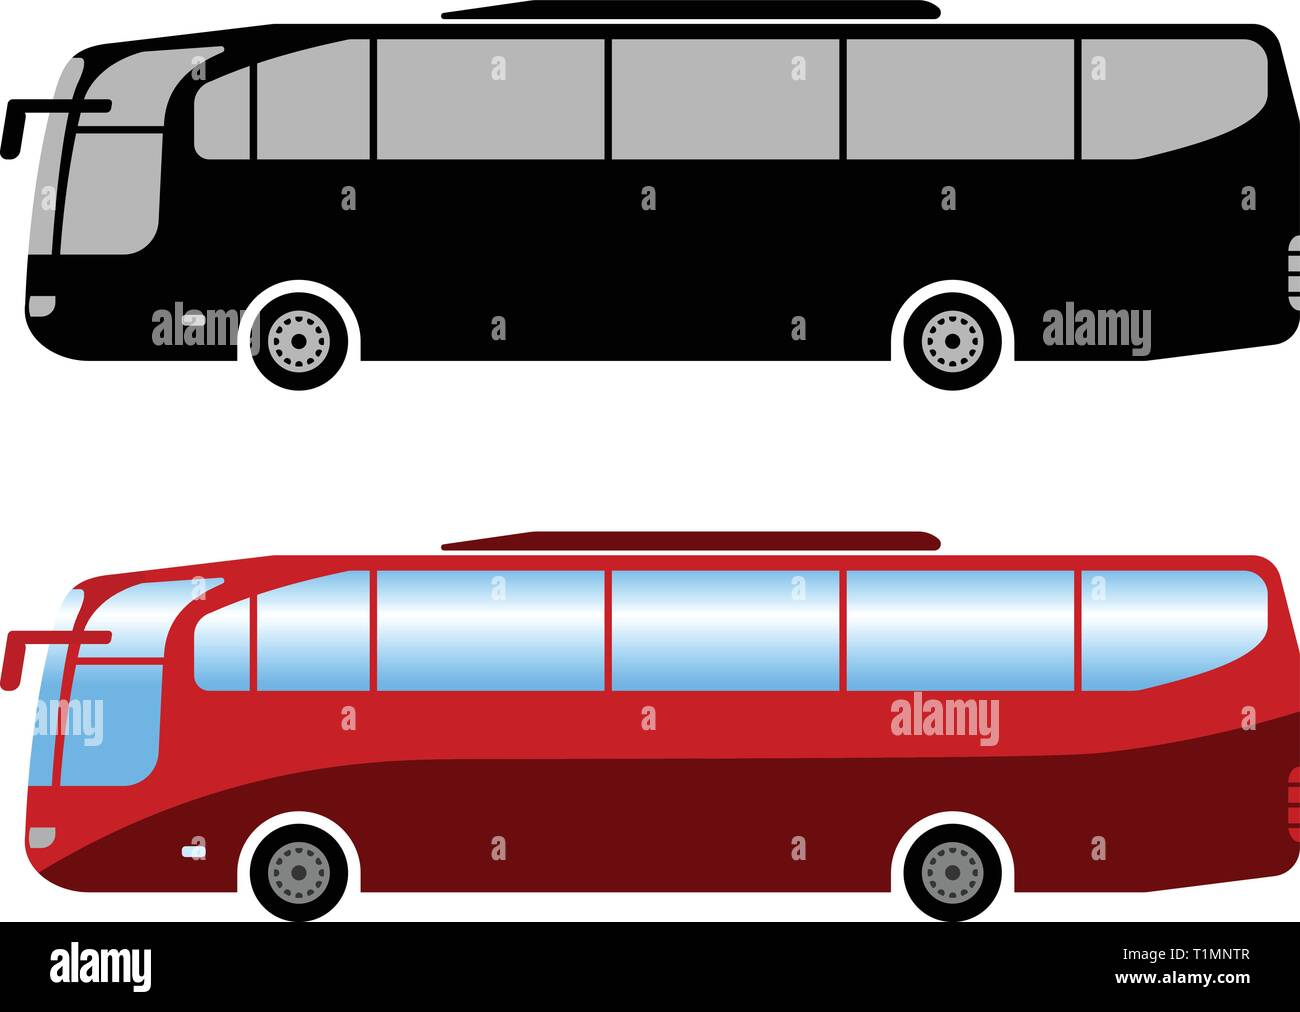 coach bus simple illustration - vector Stock Vector